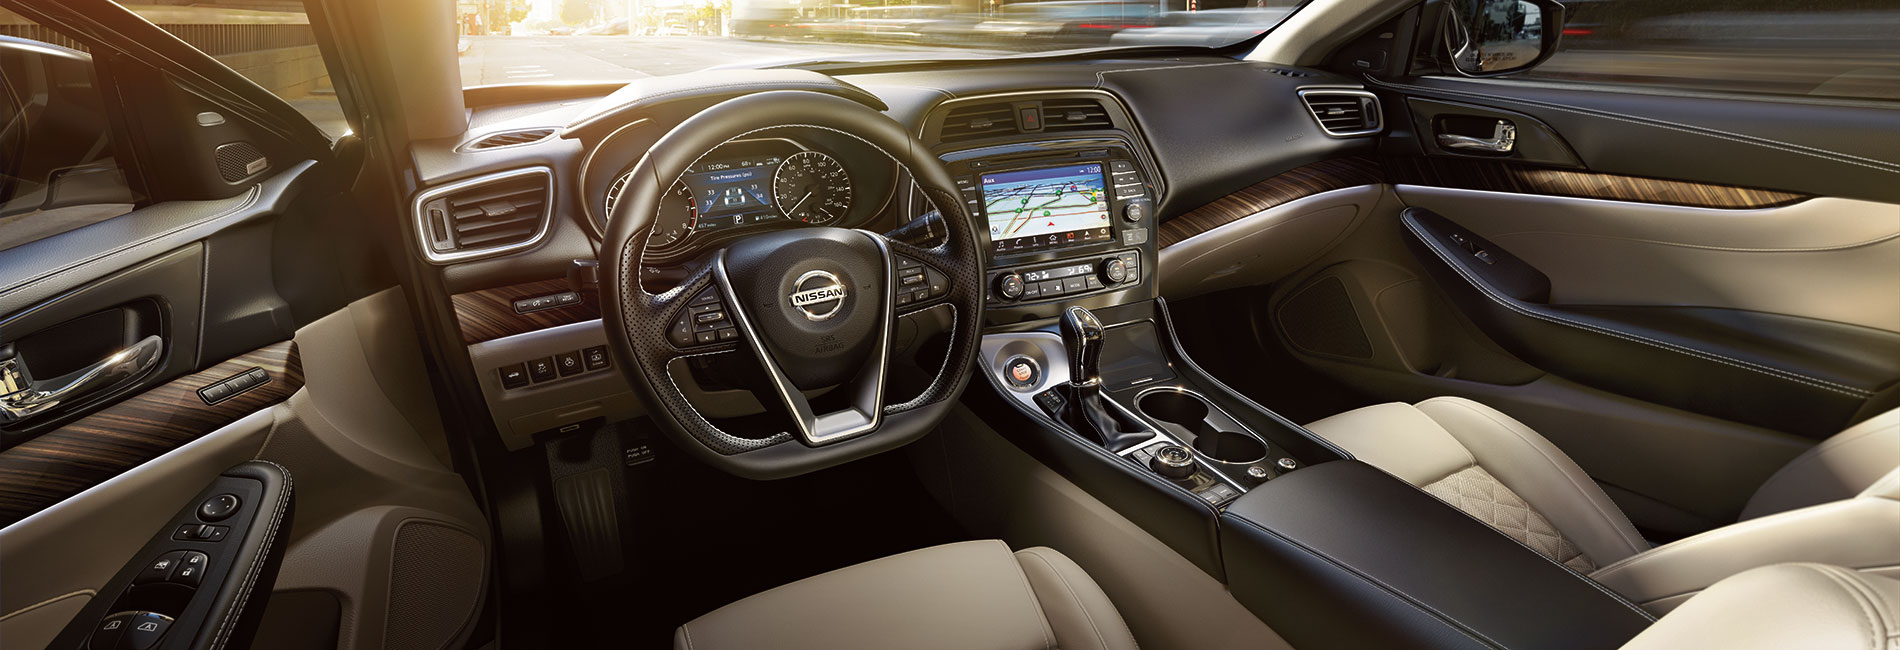 Nissan Maxima Interior Vehicle Features